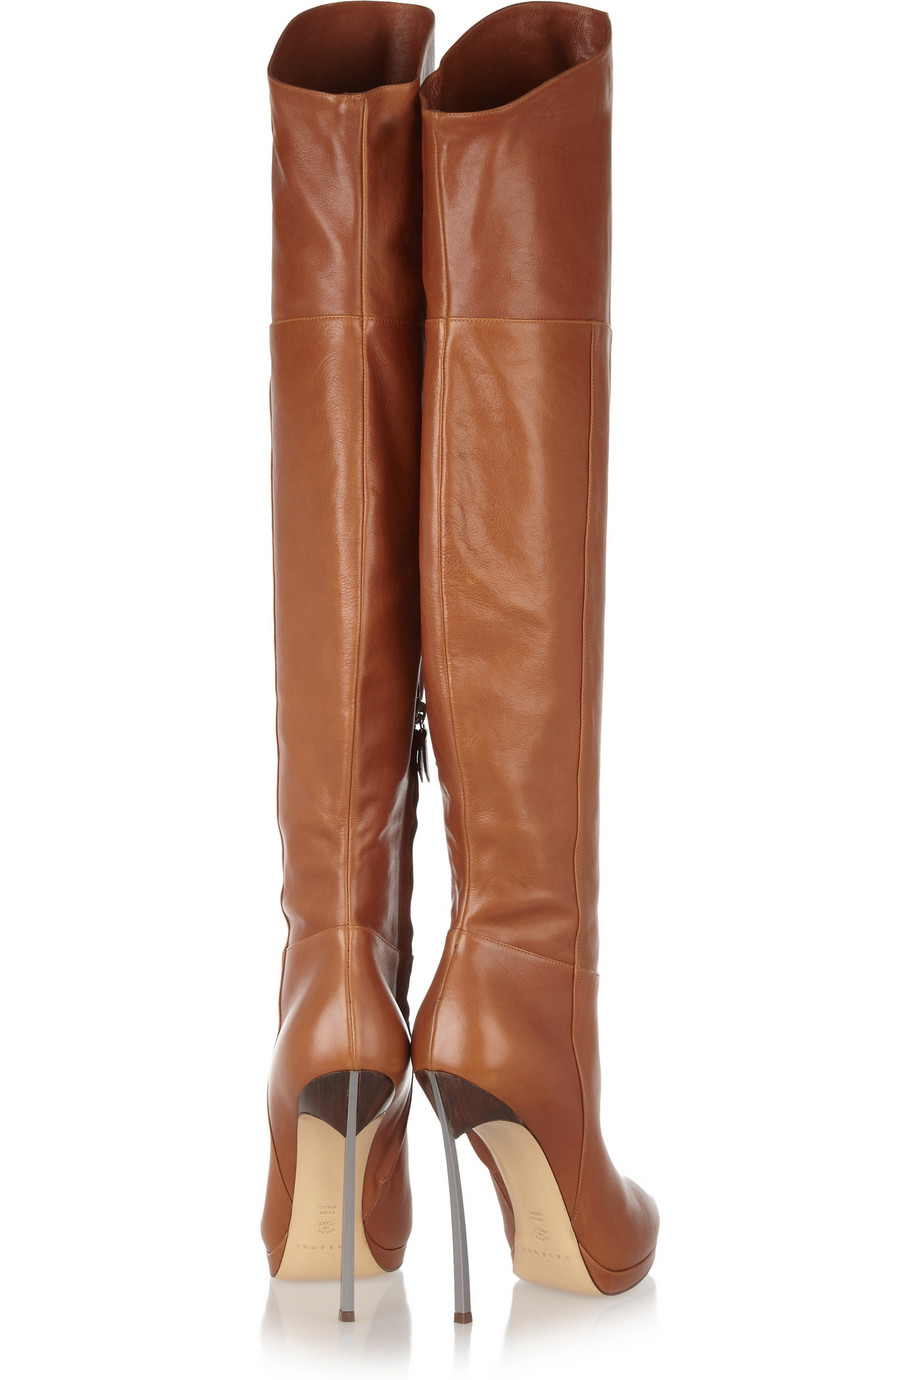 b7a3d28ee78 Lyst - Casadei Leather Thigh Boots in Brown